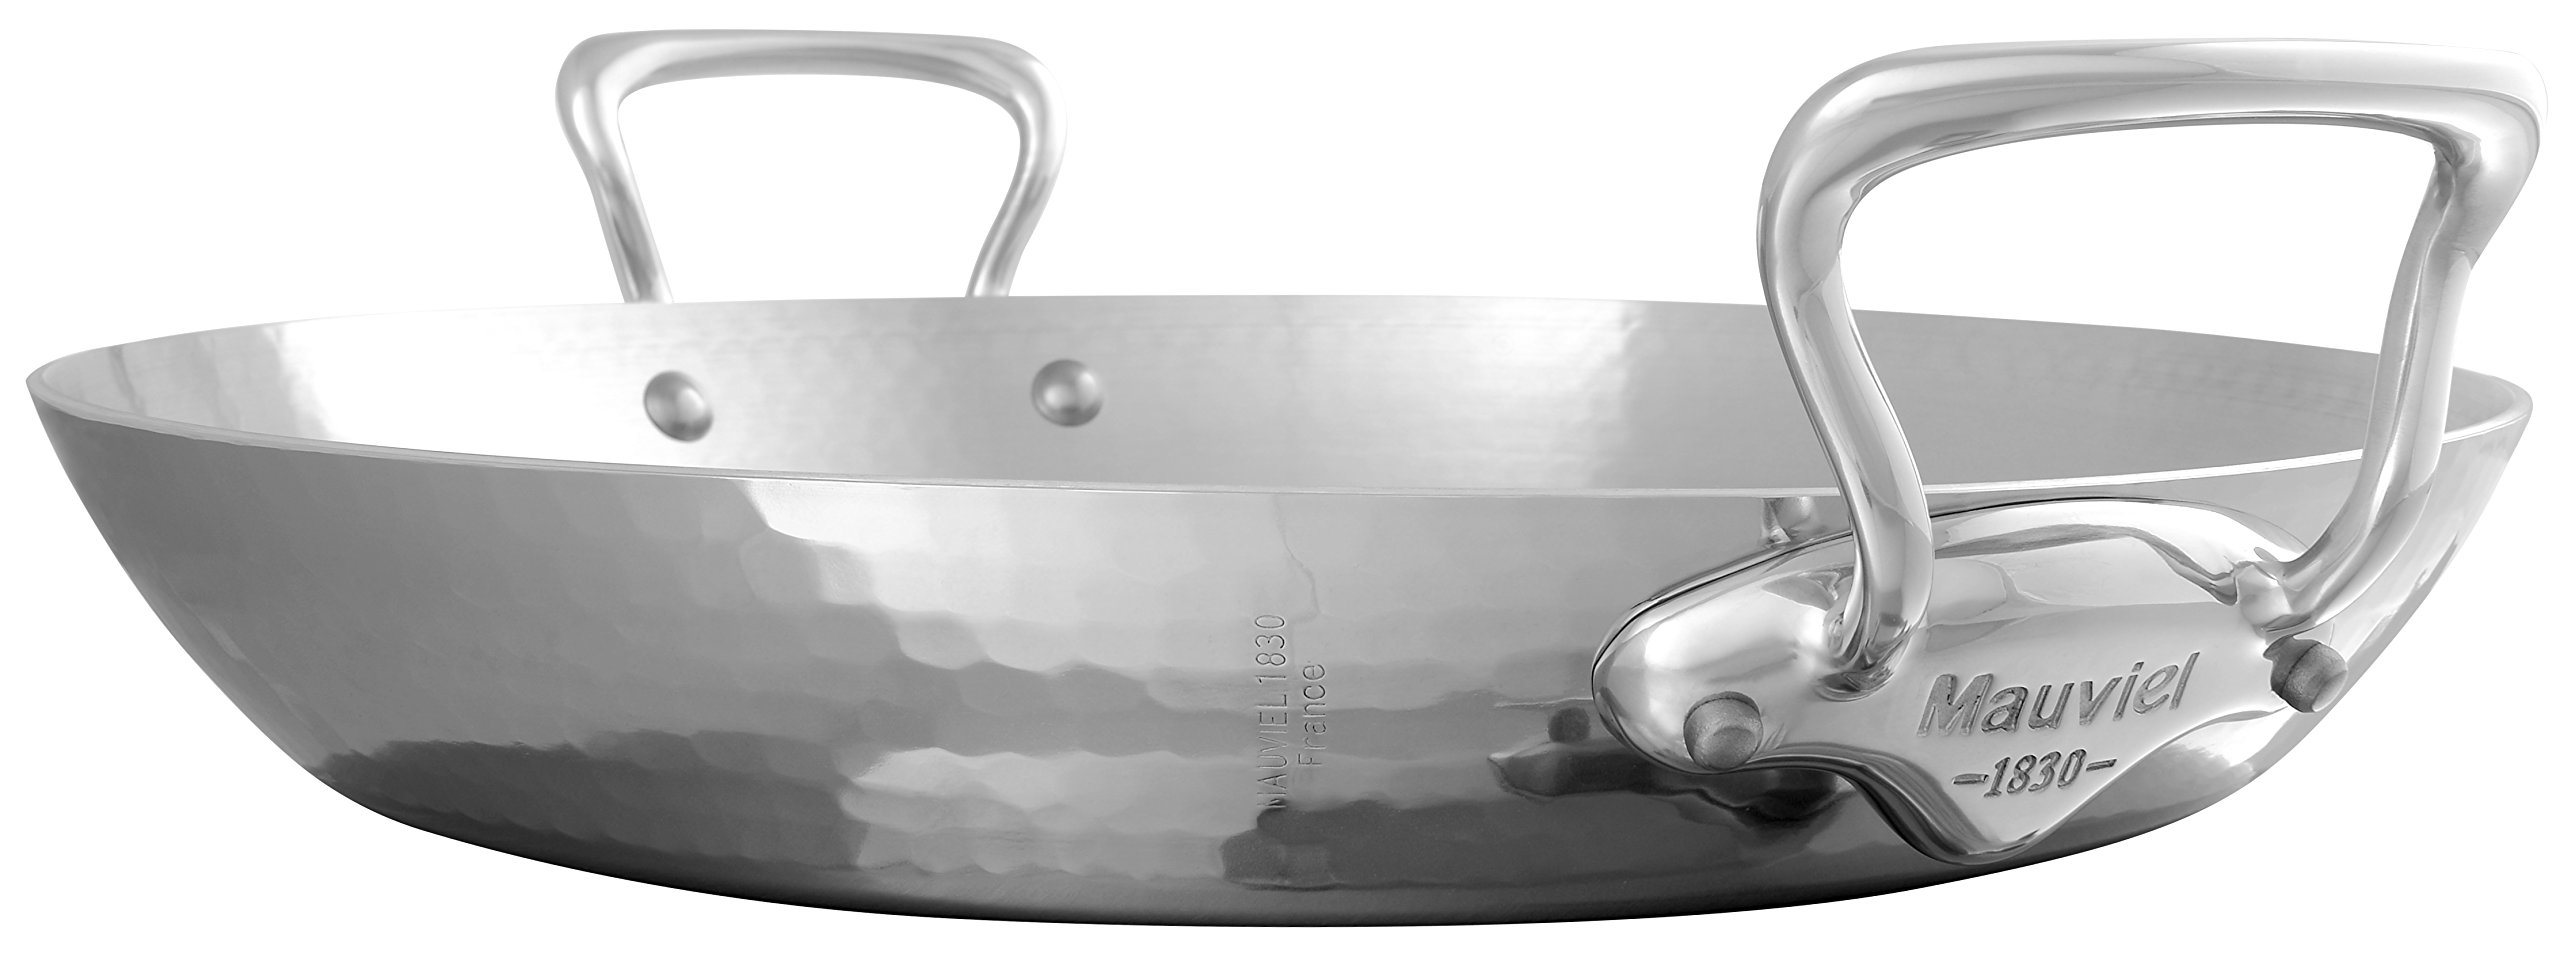 Mauviel 5277.4 M'Elite Paella pan, 15.7, Stainless by Mauviel